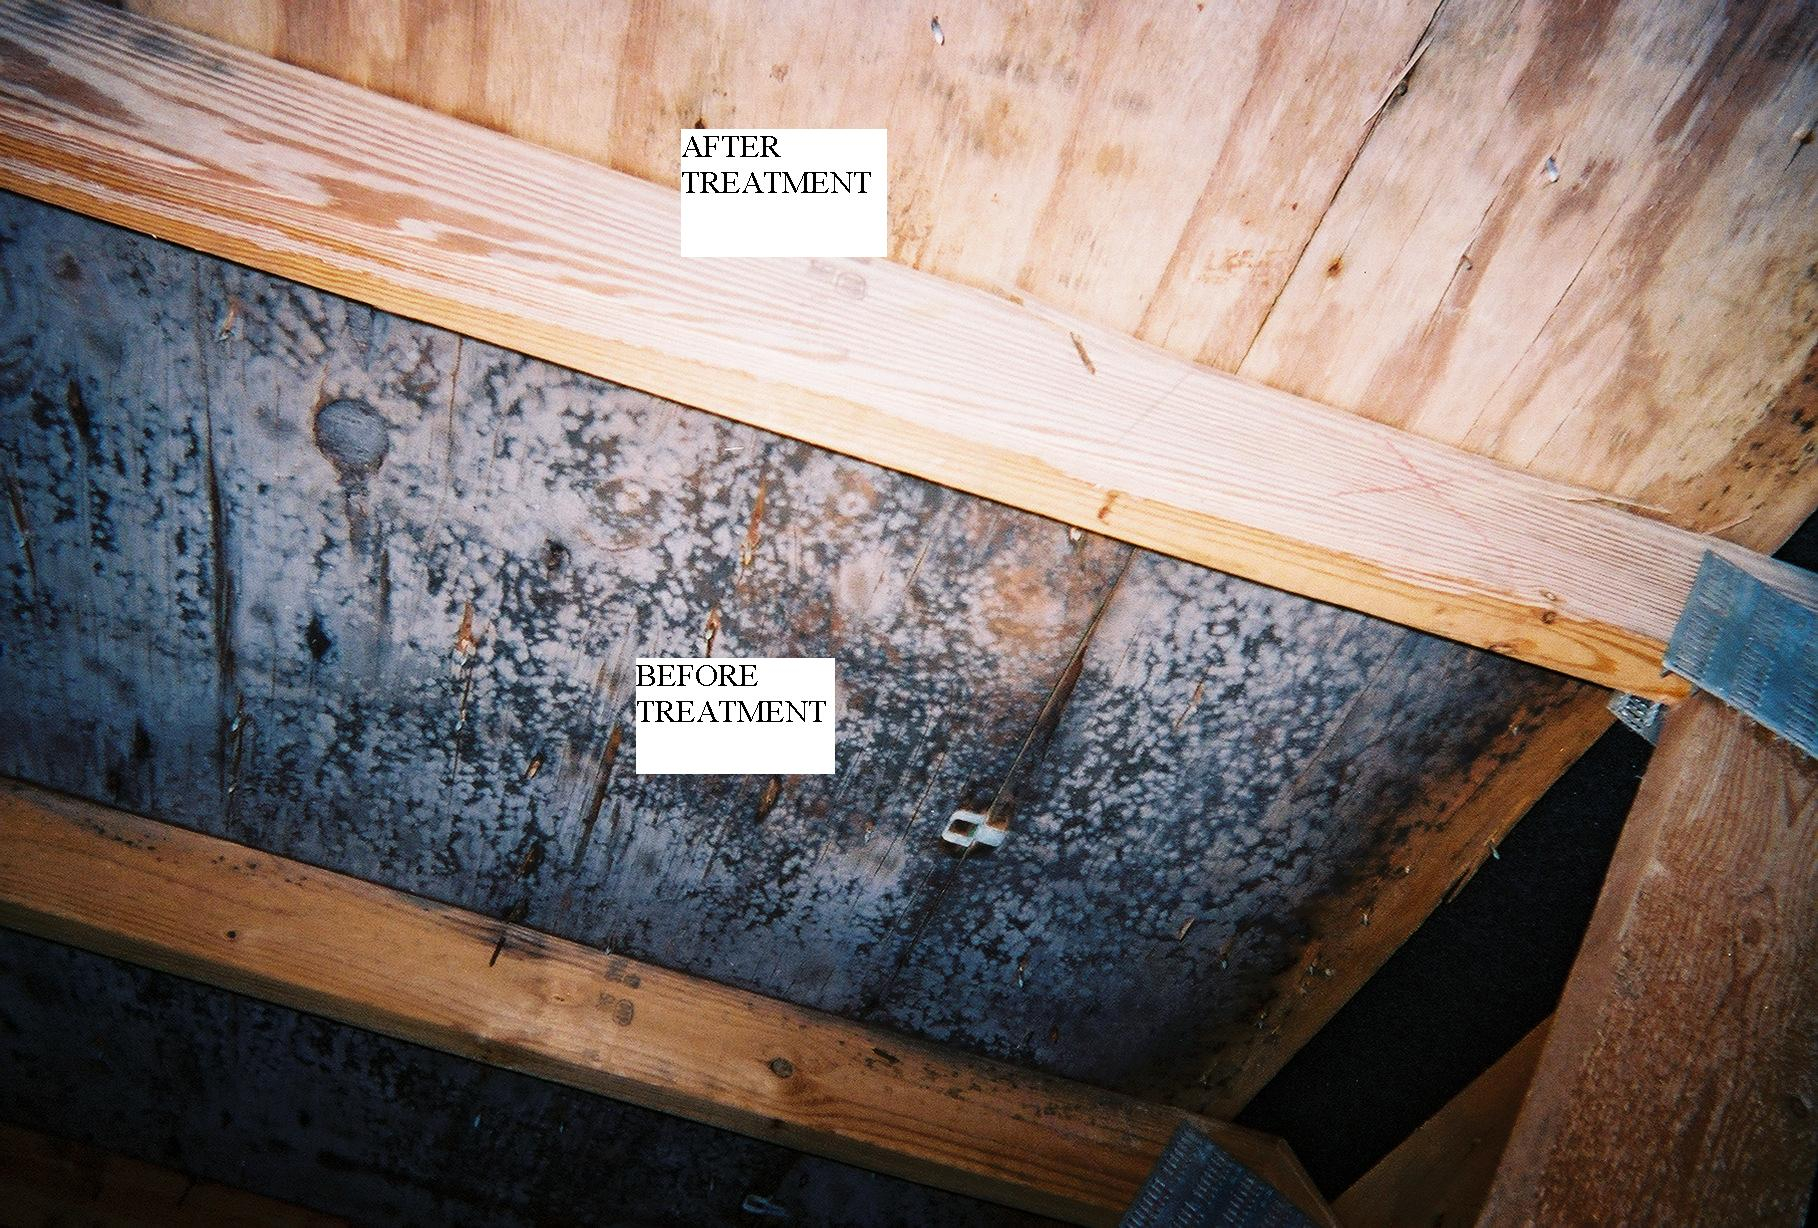 White Powder Mold Attic Attic Ideas